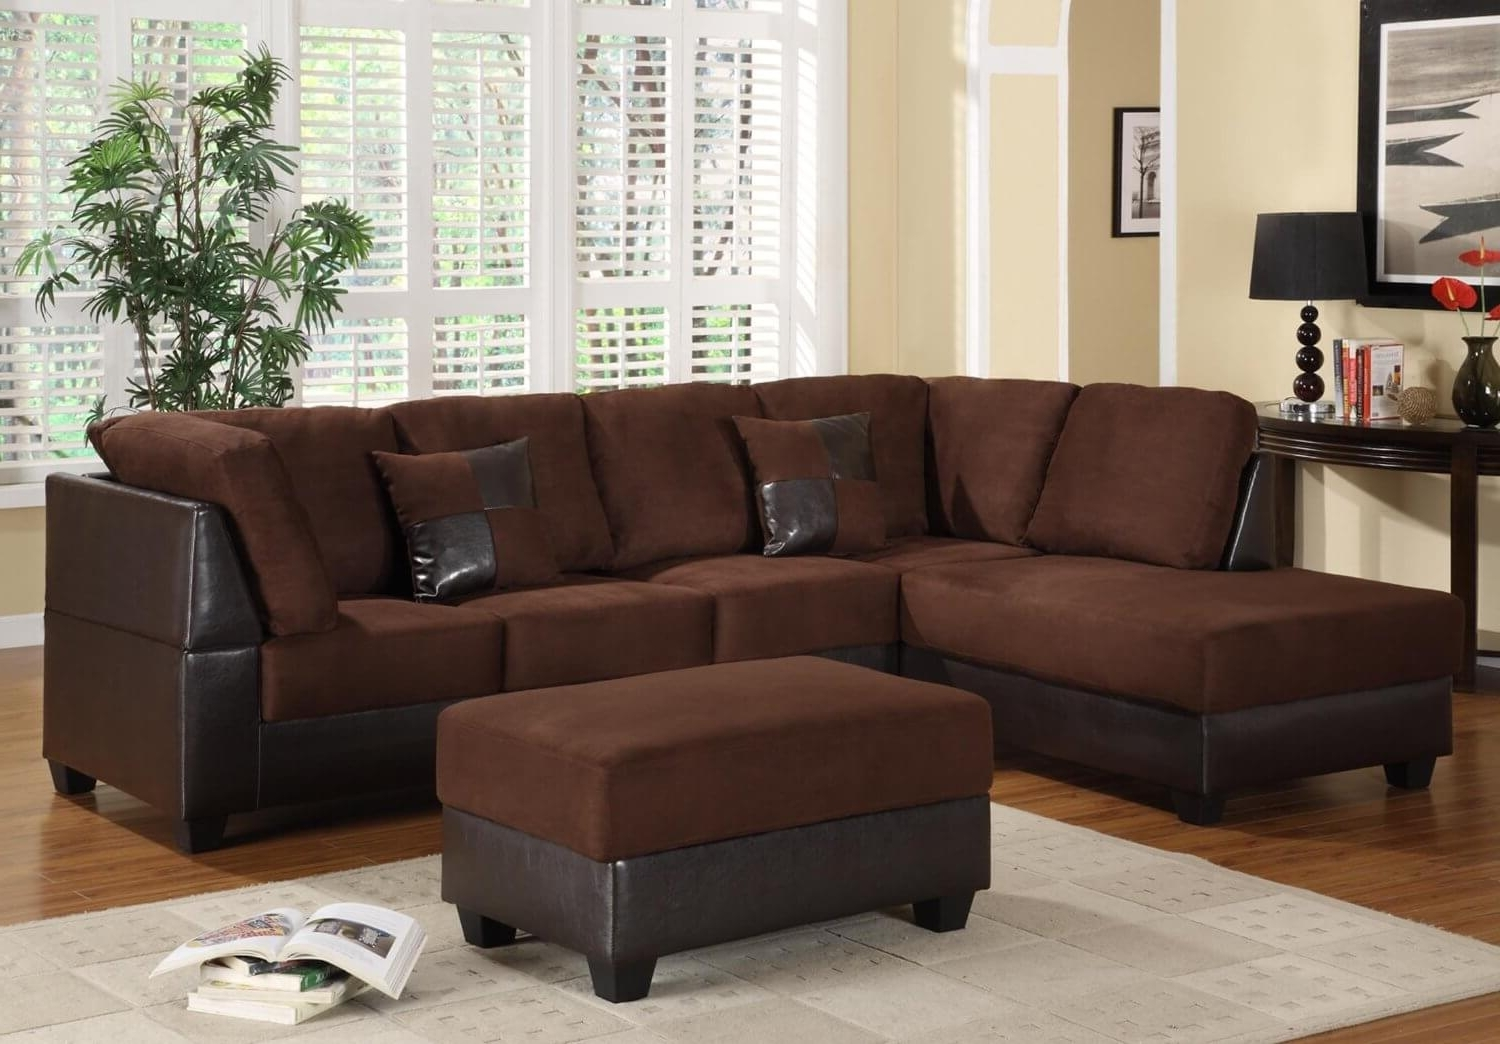 40 Cheap Sectional Sofas Under $500 For 2018 With Most Popular Sectional Sofas Under  (View 2 of 20)